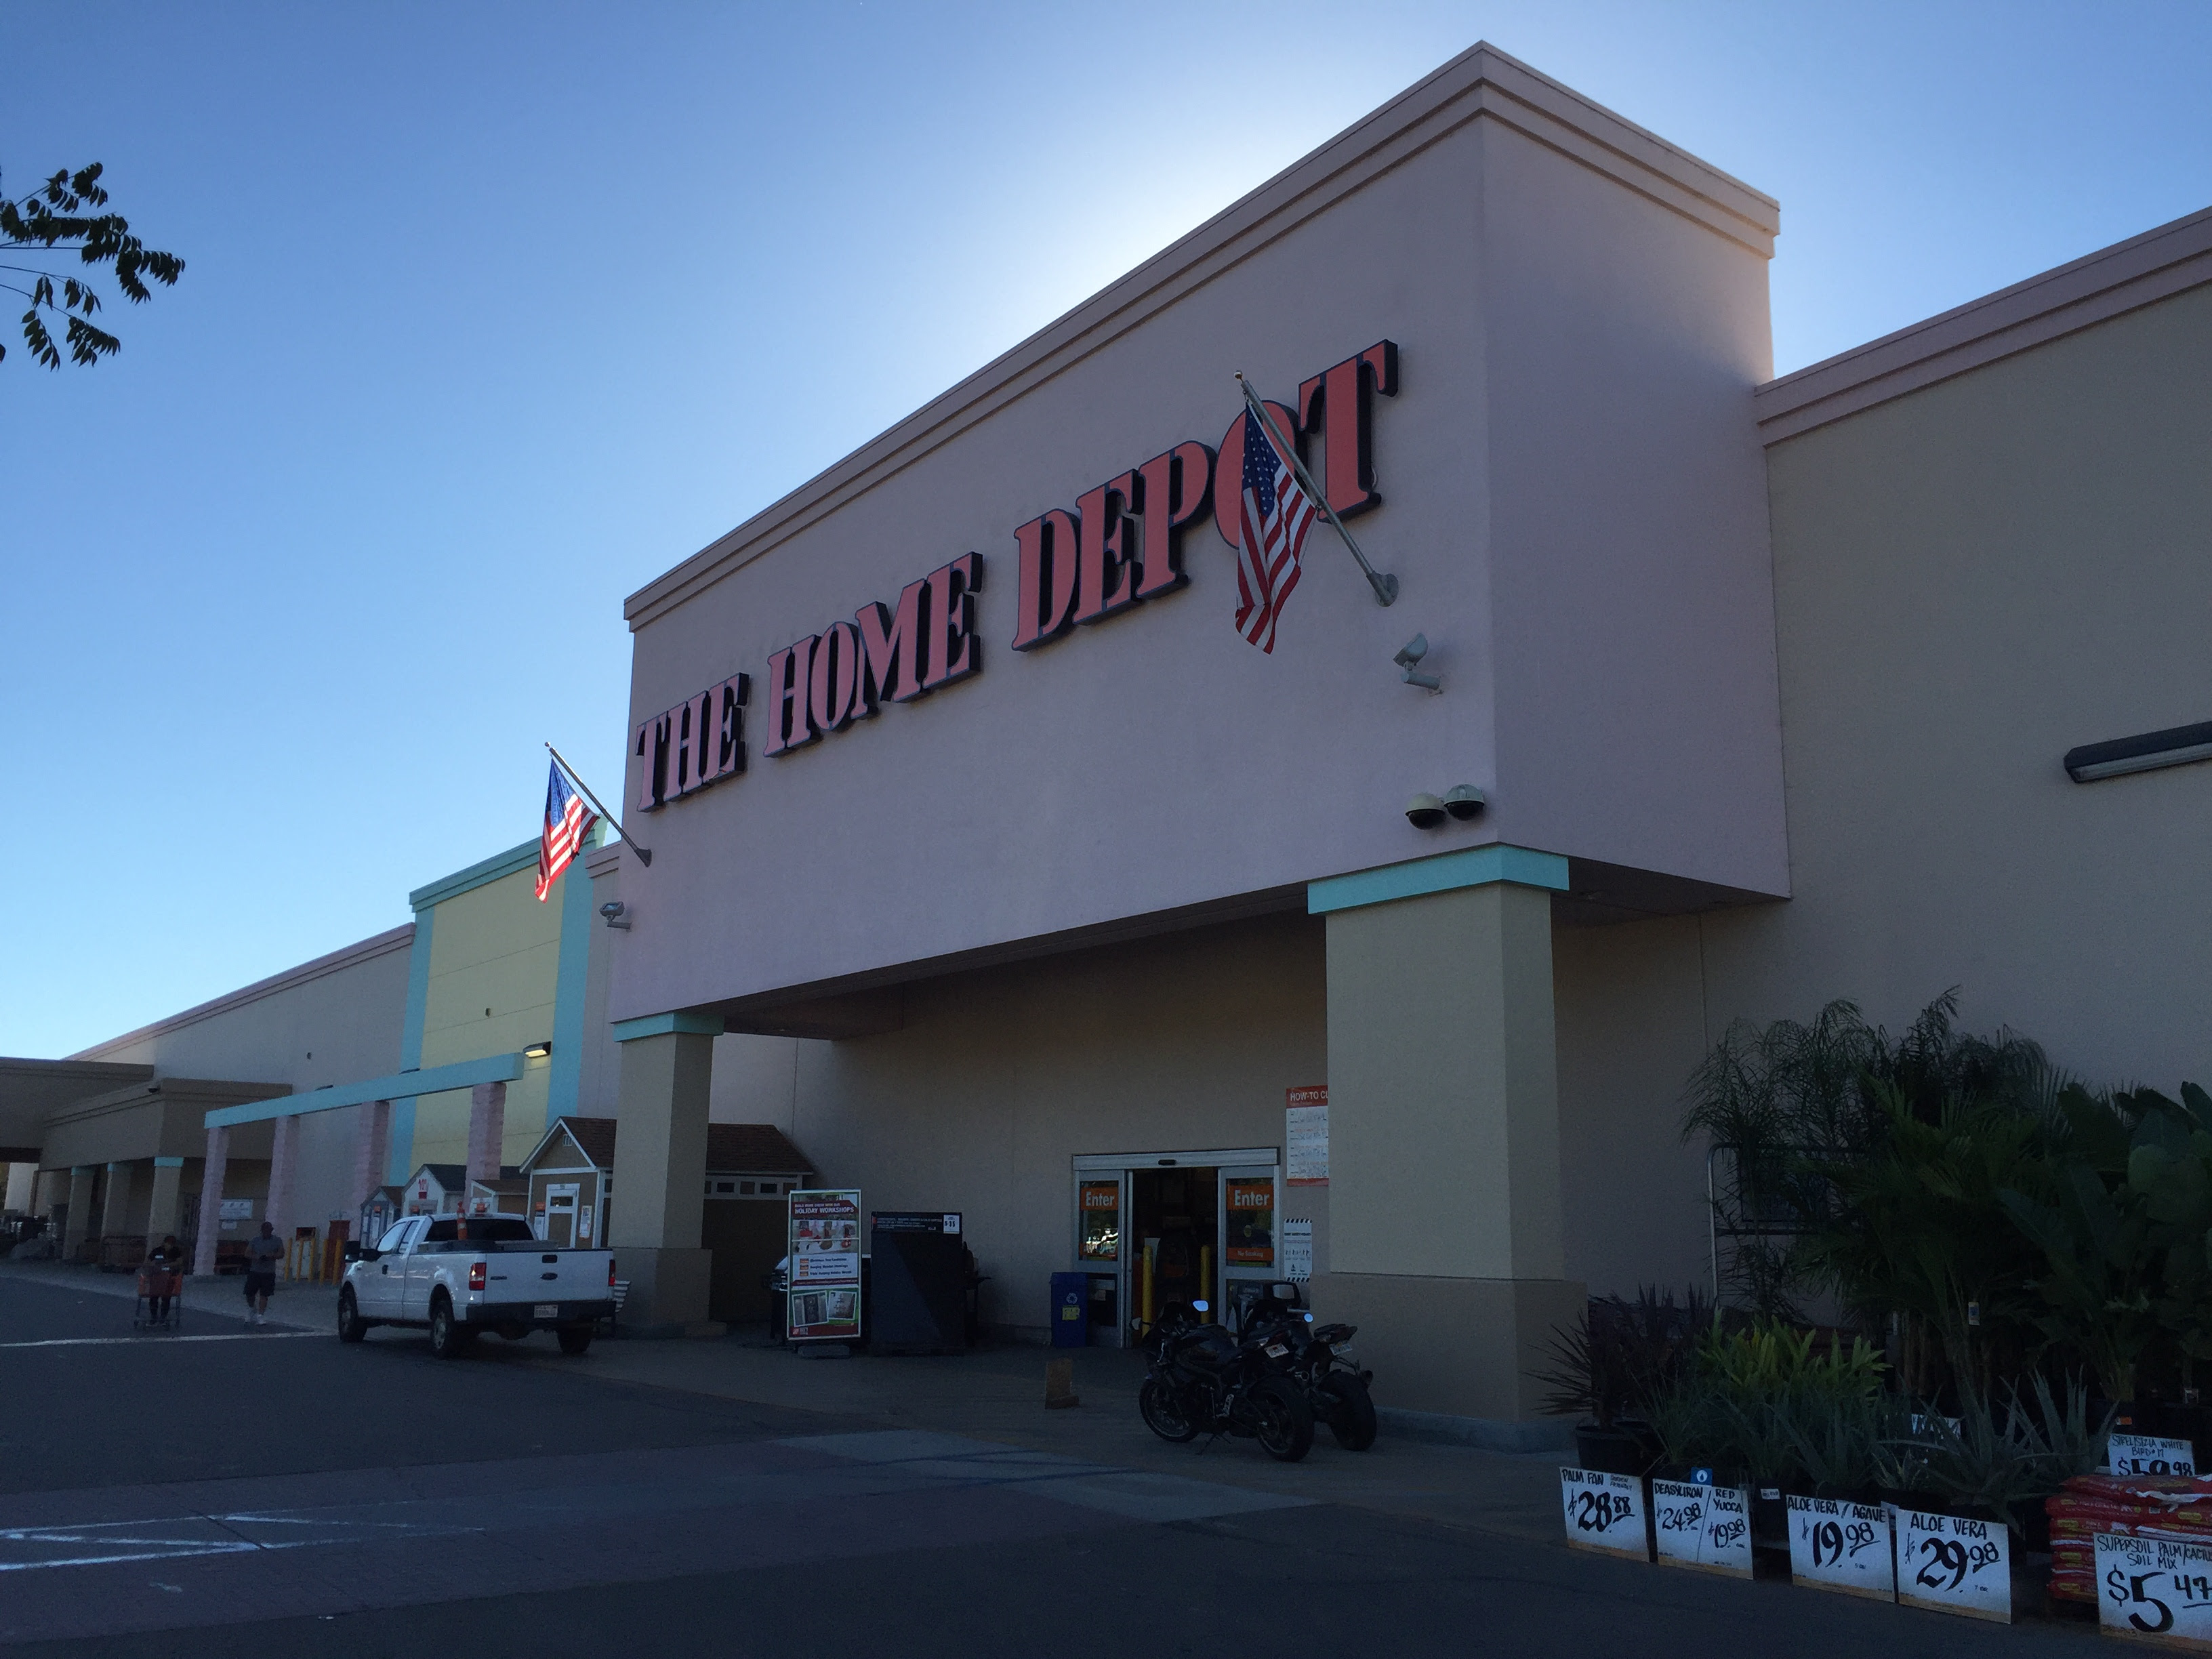 The Home Depot 950 Dennery Rd San Diego, CA Home Depot - MapQuest